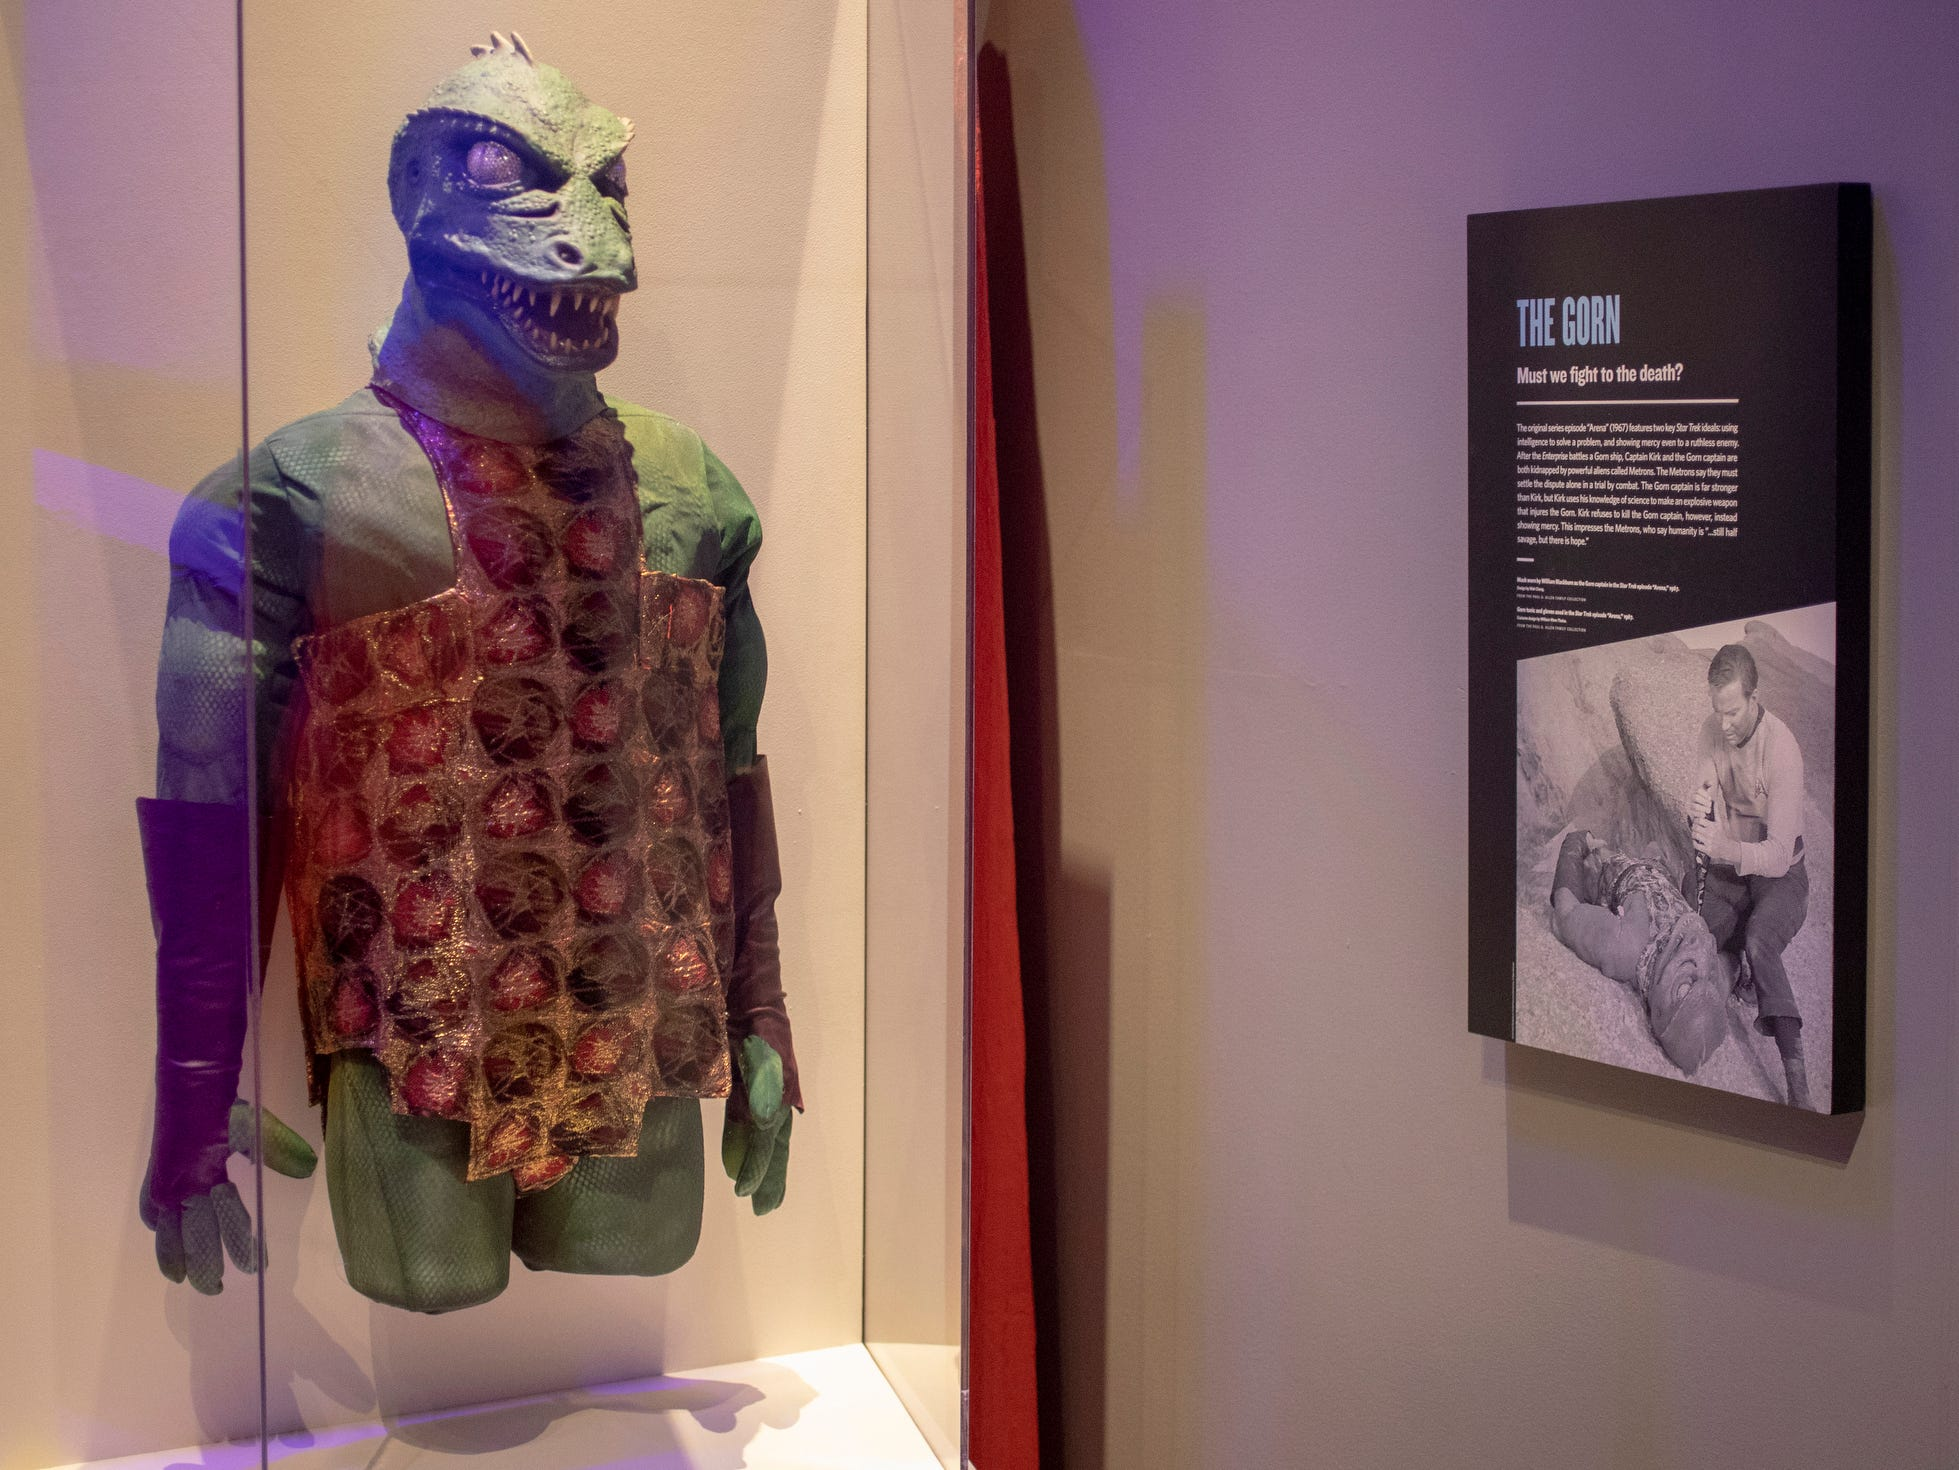 """A display featuring a Gorn, an extraterrestrial whom Captain Kirk famously fights in the original """"Star Trek"""" series, is seen at The Children's Museum of Indianapolis, Wednesday, Jan. 23, 2019. The """"Star Trek: Exploring New Worlds"""" exhibit is made up of set pieces, ship models and outfits used during various Star Trek shows and movies and is on display at the museum from Feb. 2 through April 7, 2019."""